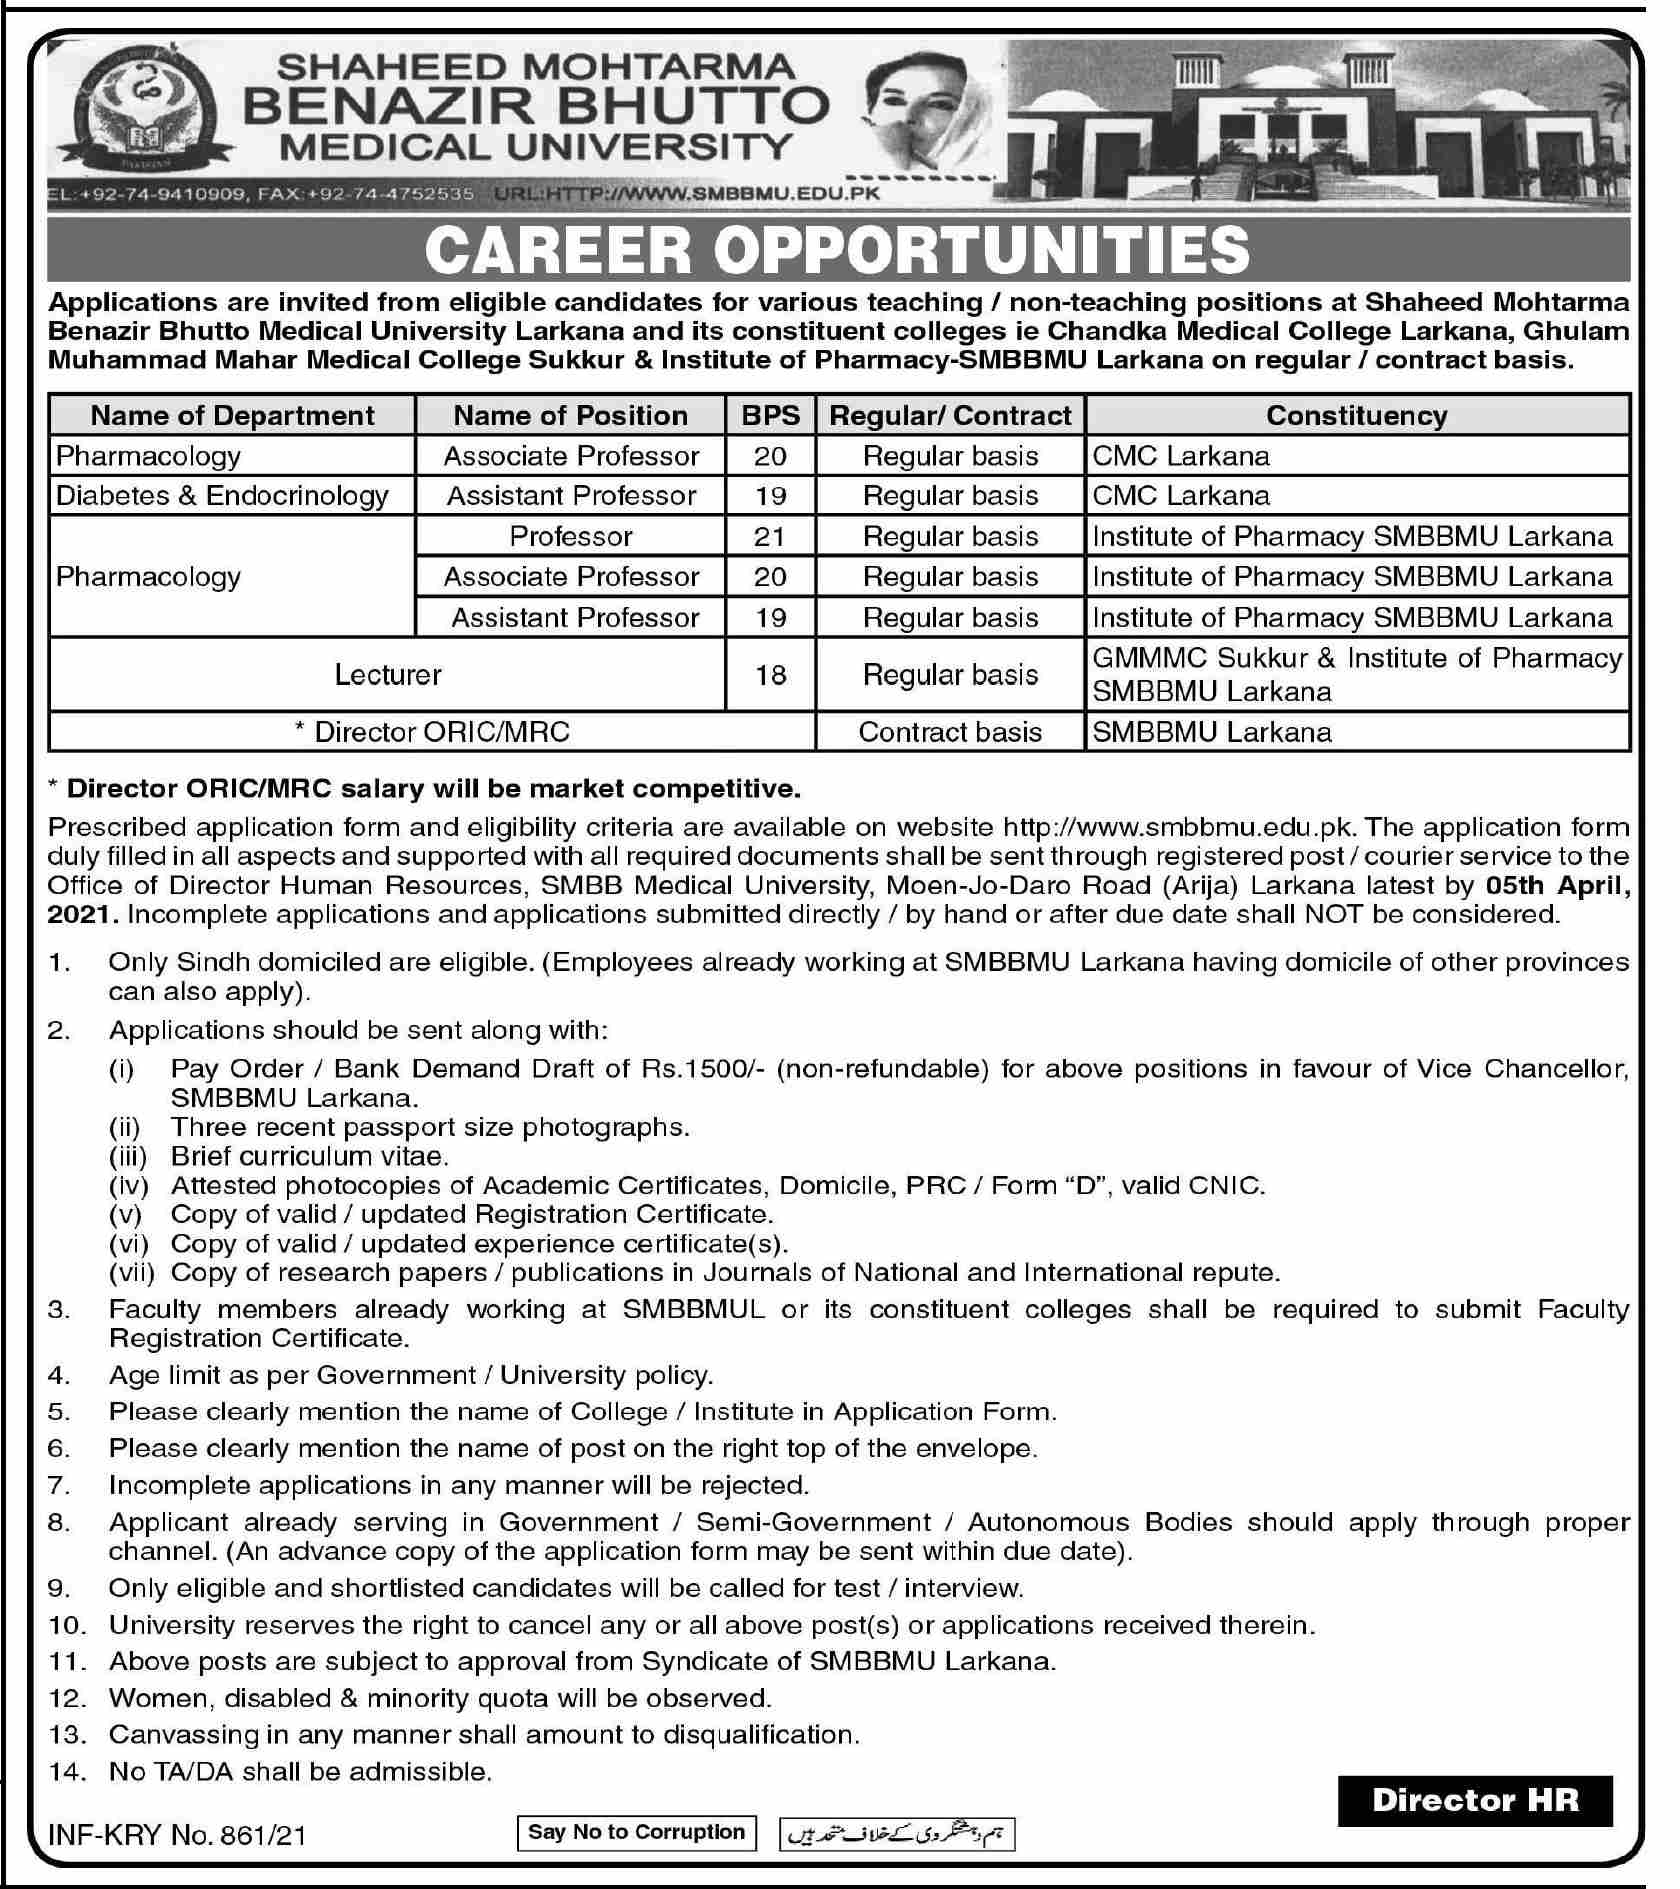 Latest Govt Jobs 2021 in Shaheed Mohtarma Benazir Bhutto Medical University (SMBBMU)